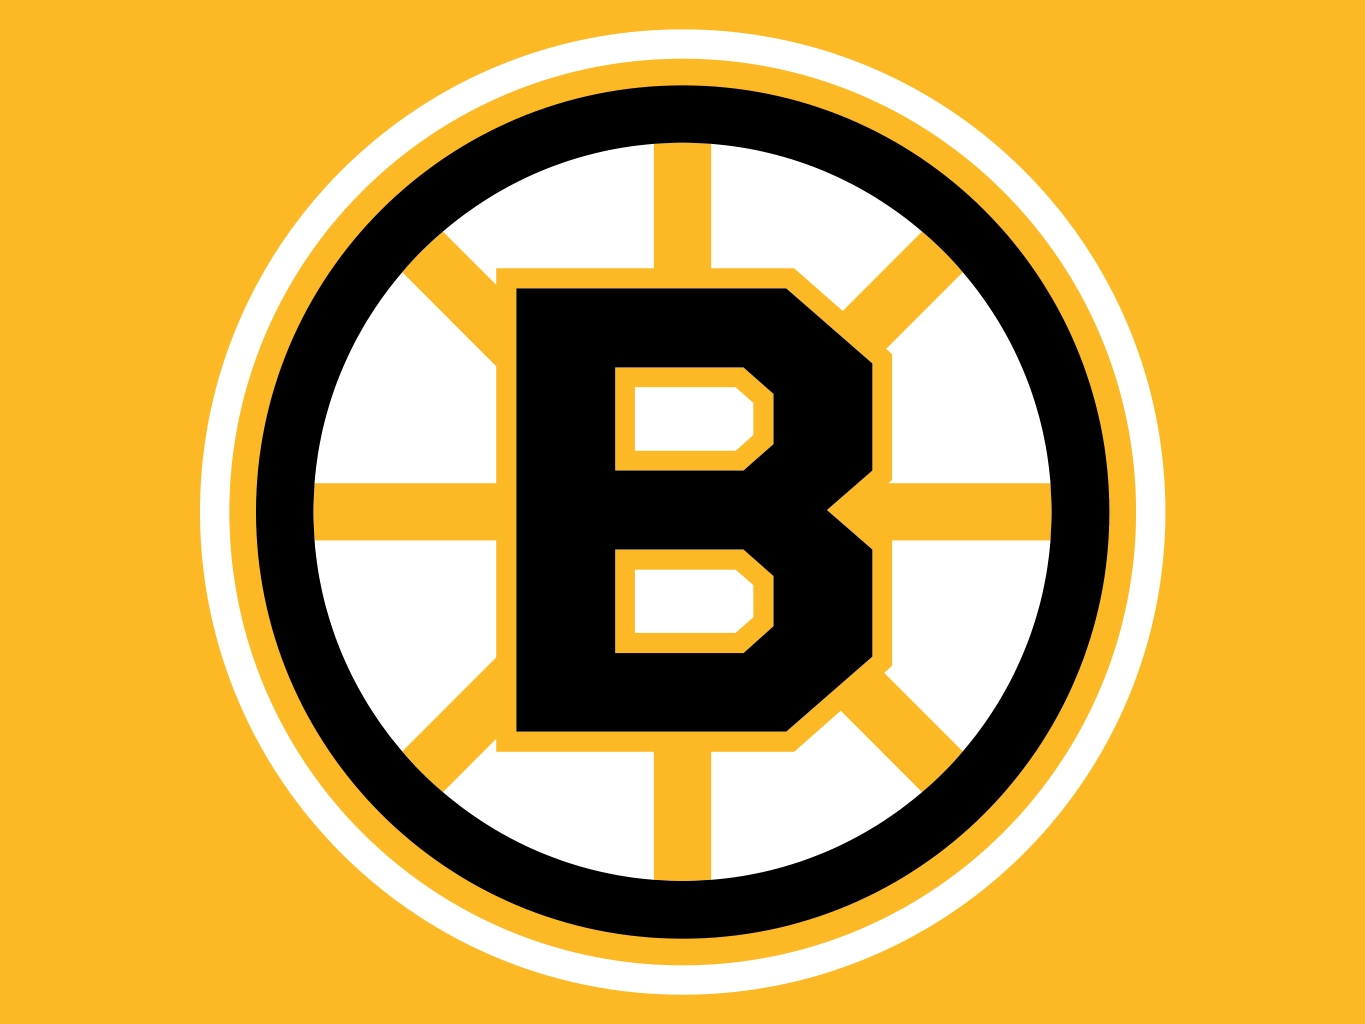 Boston Bruins: At Least I'm Consistent.